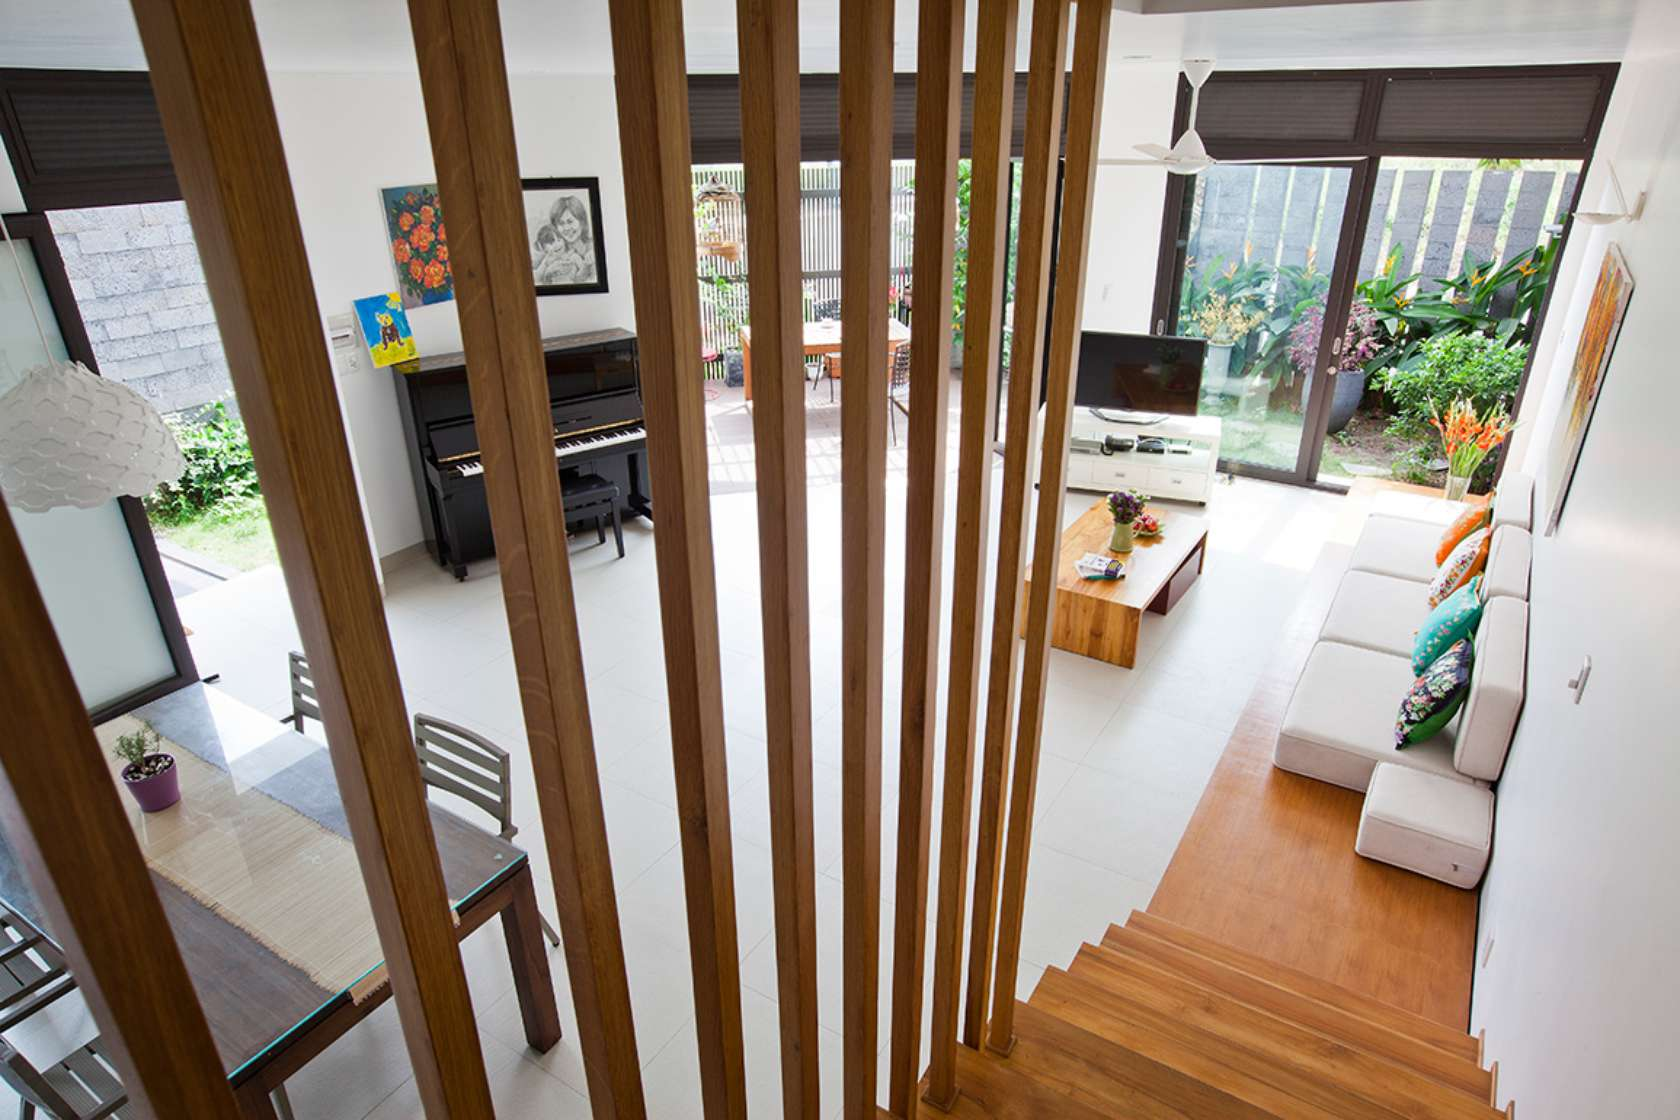 Western Newspaper praised the words of the 3-storey townhouse with beautiful garden in Saigon - Beautiful House No. (9)